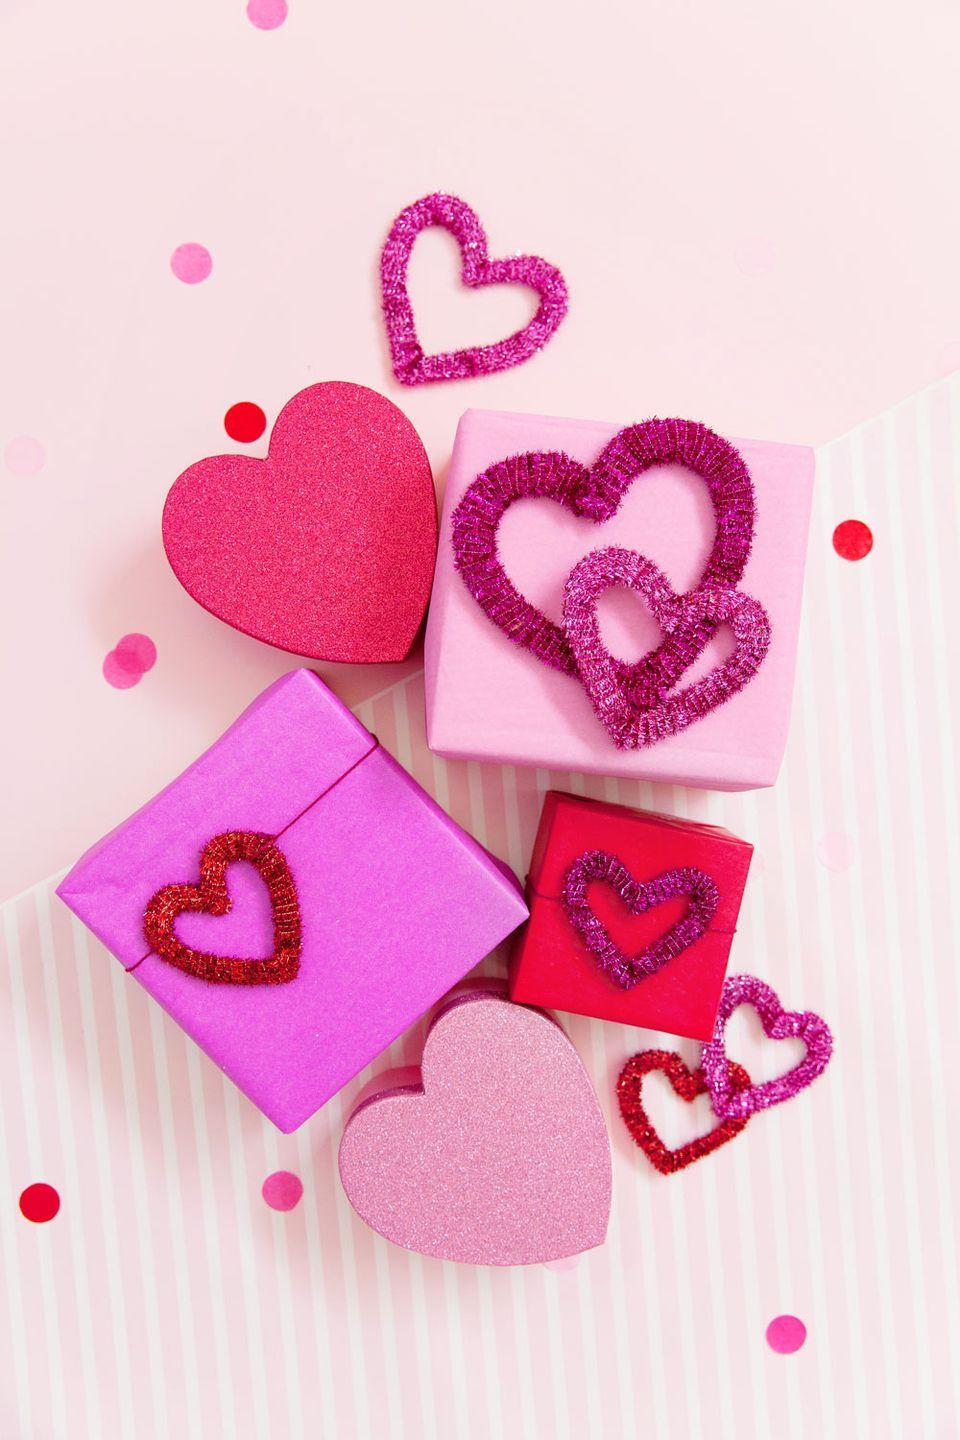 """<p>Once the make a batch of these sparkly hearts, the choice is yours: You can stick 'em on gifts, connect them as a garland, or use them to dress up your table. </p><p><em><a href=""""https://tellloveandparty.com/2018/01/diy-pipe-cleaner-hearts.html"""" rel=""""nofollow noopener"""" target=""""_blank"""" data-ylk=""""slk:Get the tutorial at Tell Love and Party »"""" class=""""link rapid-noclick-resp"""">Get the tutorial at Tell Love and Party »</a></em></p>"""